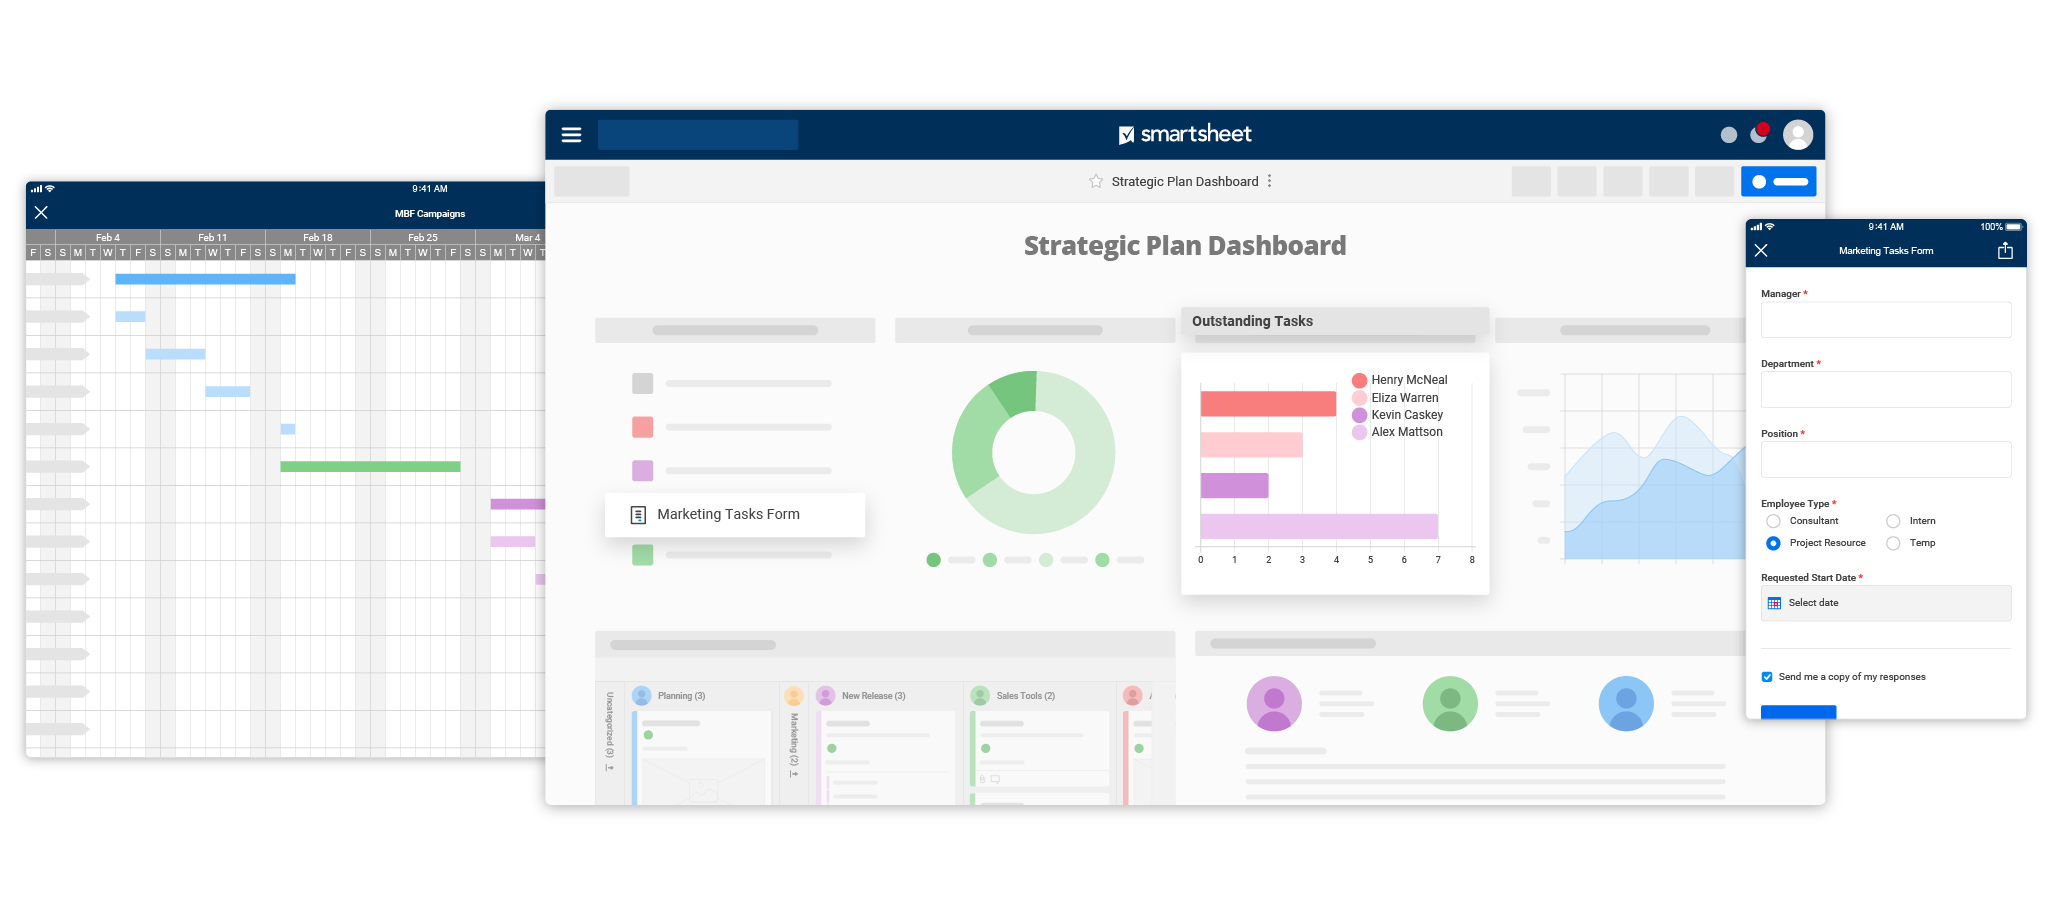 Smartsheet dashboards and views